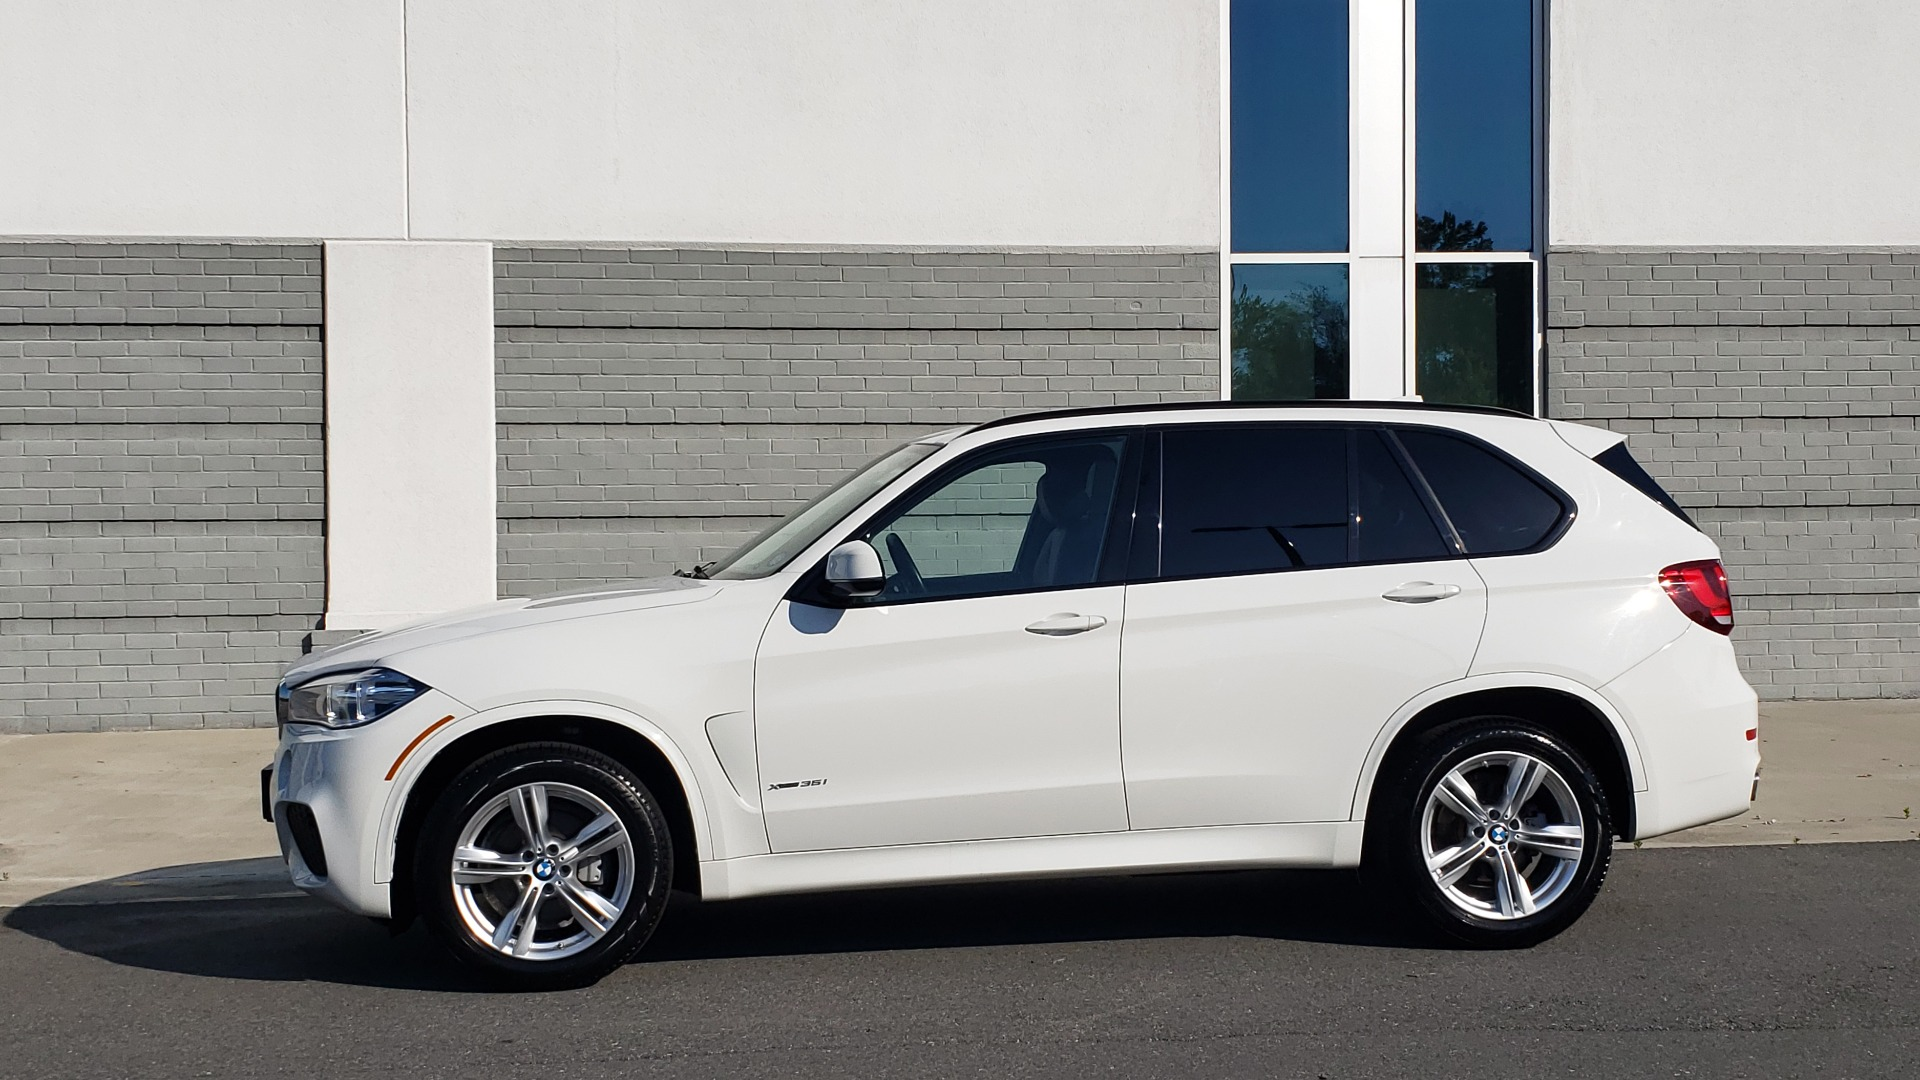 Used 2018 BMW X5 XDRIVE35I / M-SPORT / NAV / SUNROOF / H/K SND / REARVIEW for sale Sold at Formula Imports in Charlotte NC 28227 6